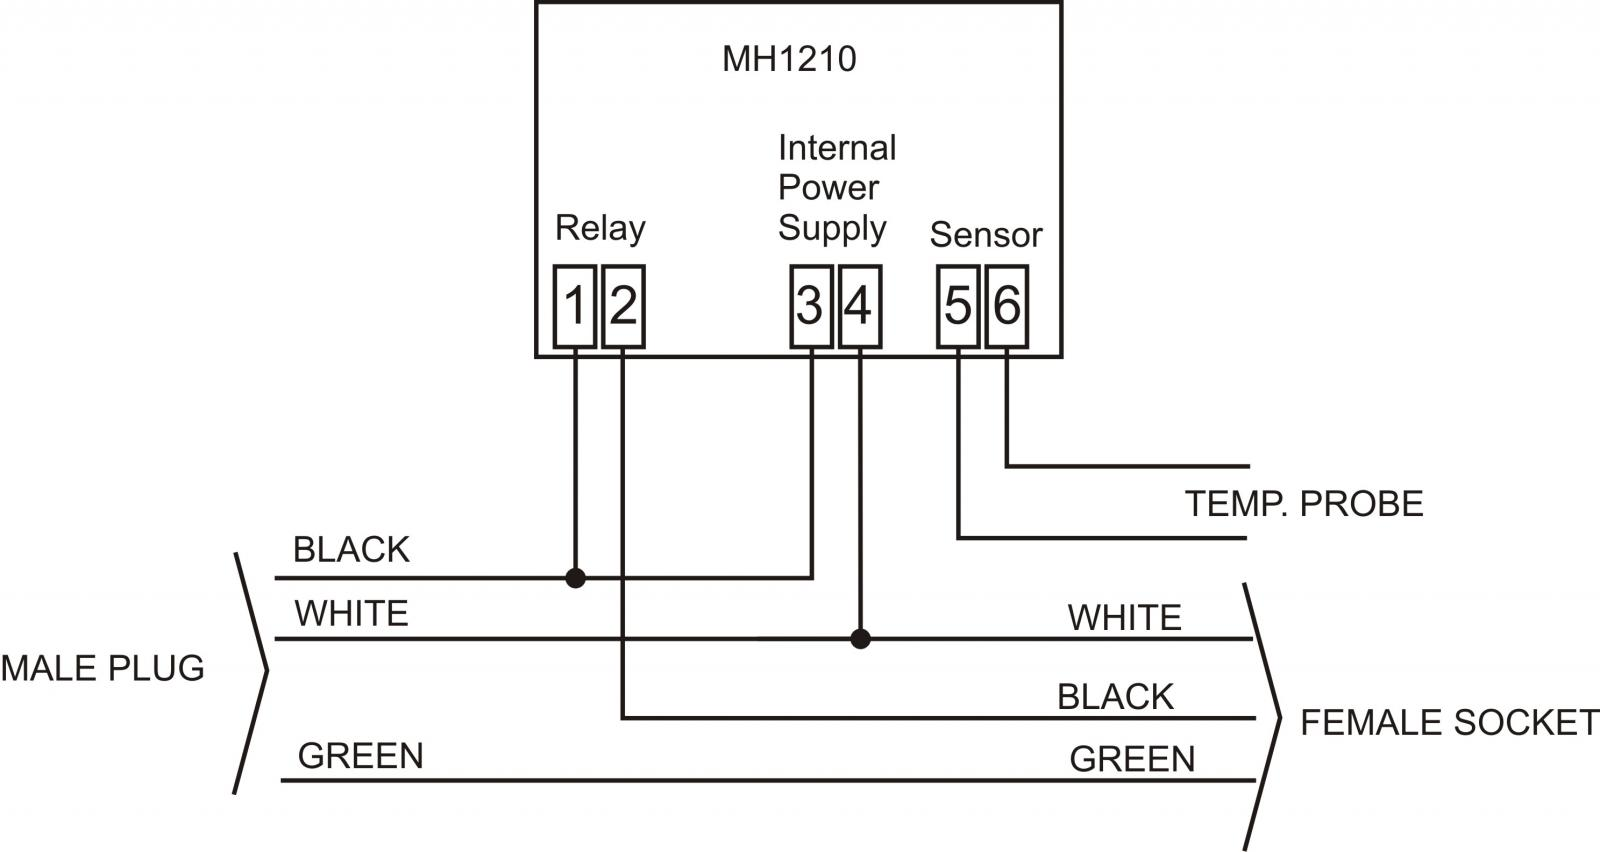 wiring help needed for mh1210f home brew forums click image for larger version mh1210 jpg views 3569 size 72 3